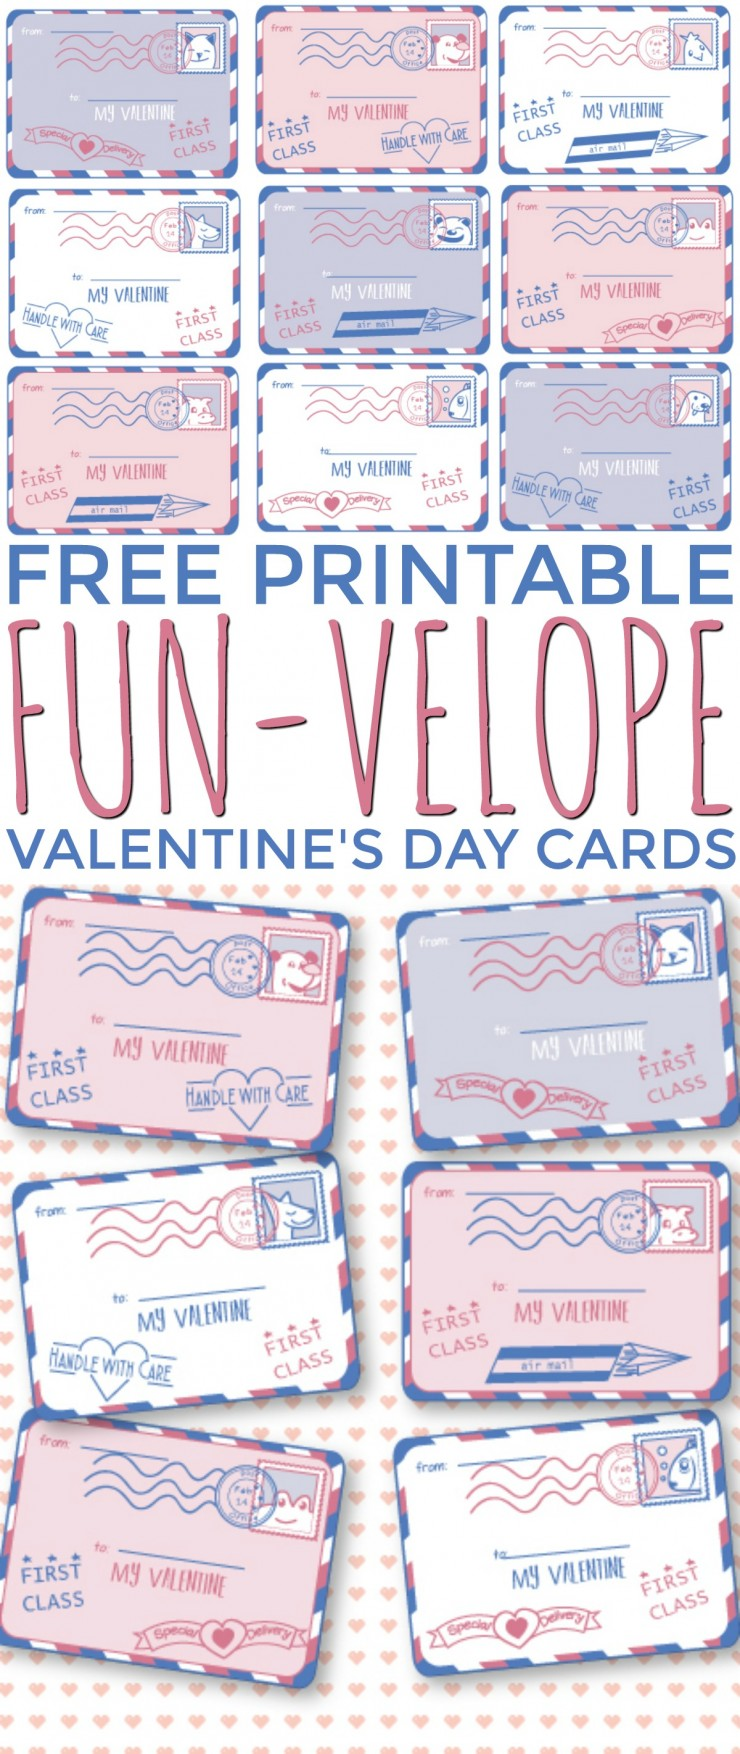 These 9 Free Printable Fun-Velope Valentine's Day Cards are super cute - they are made to look like little envelopes that can be addressed to each recipient.